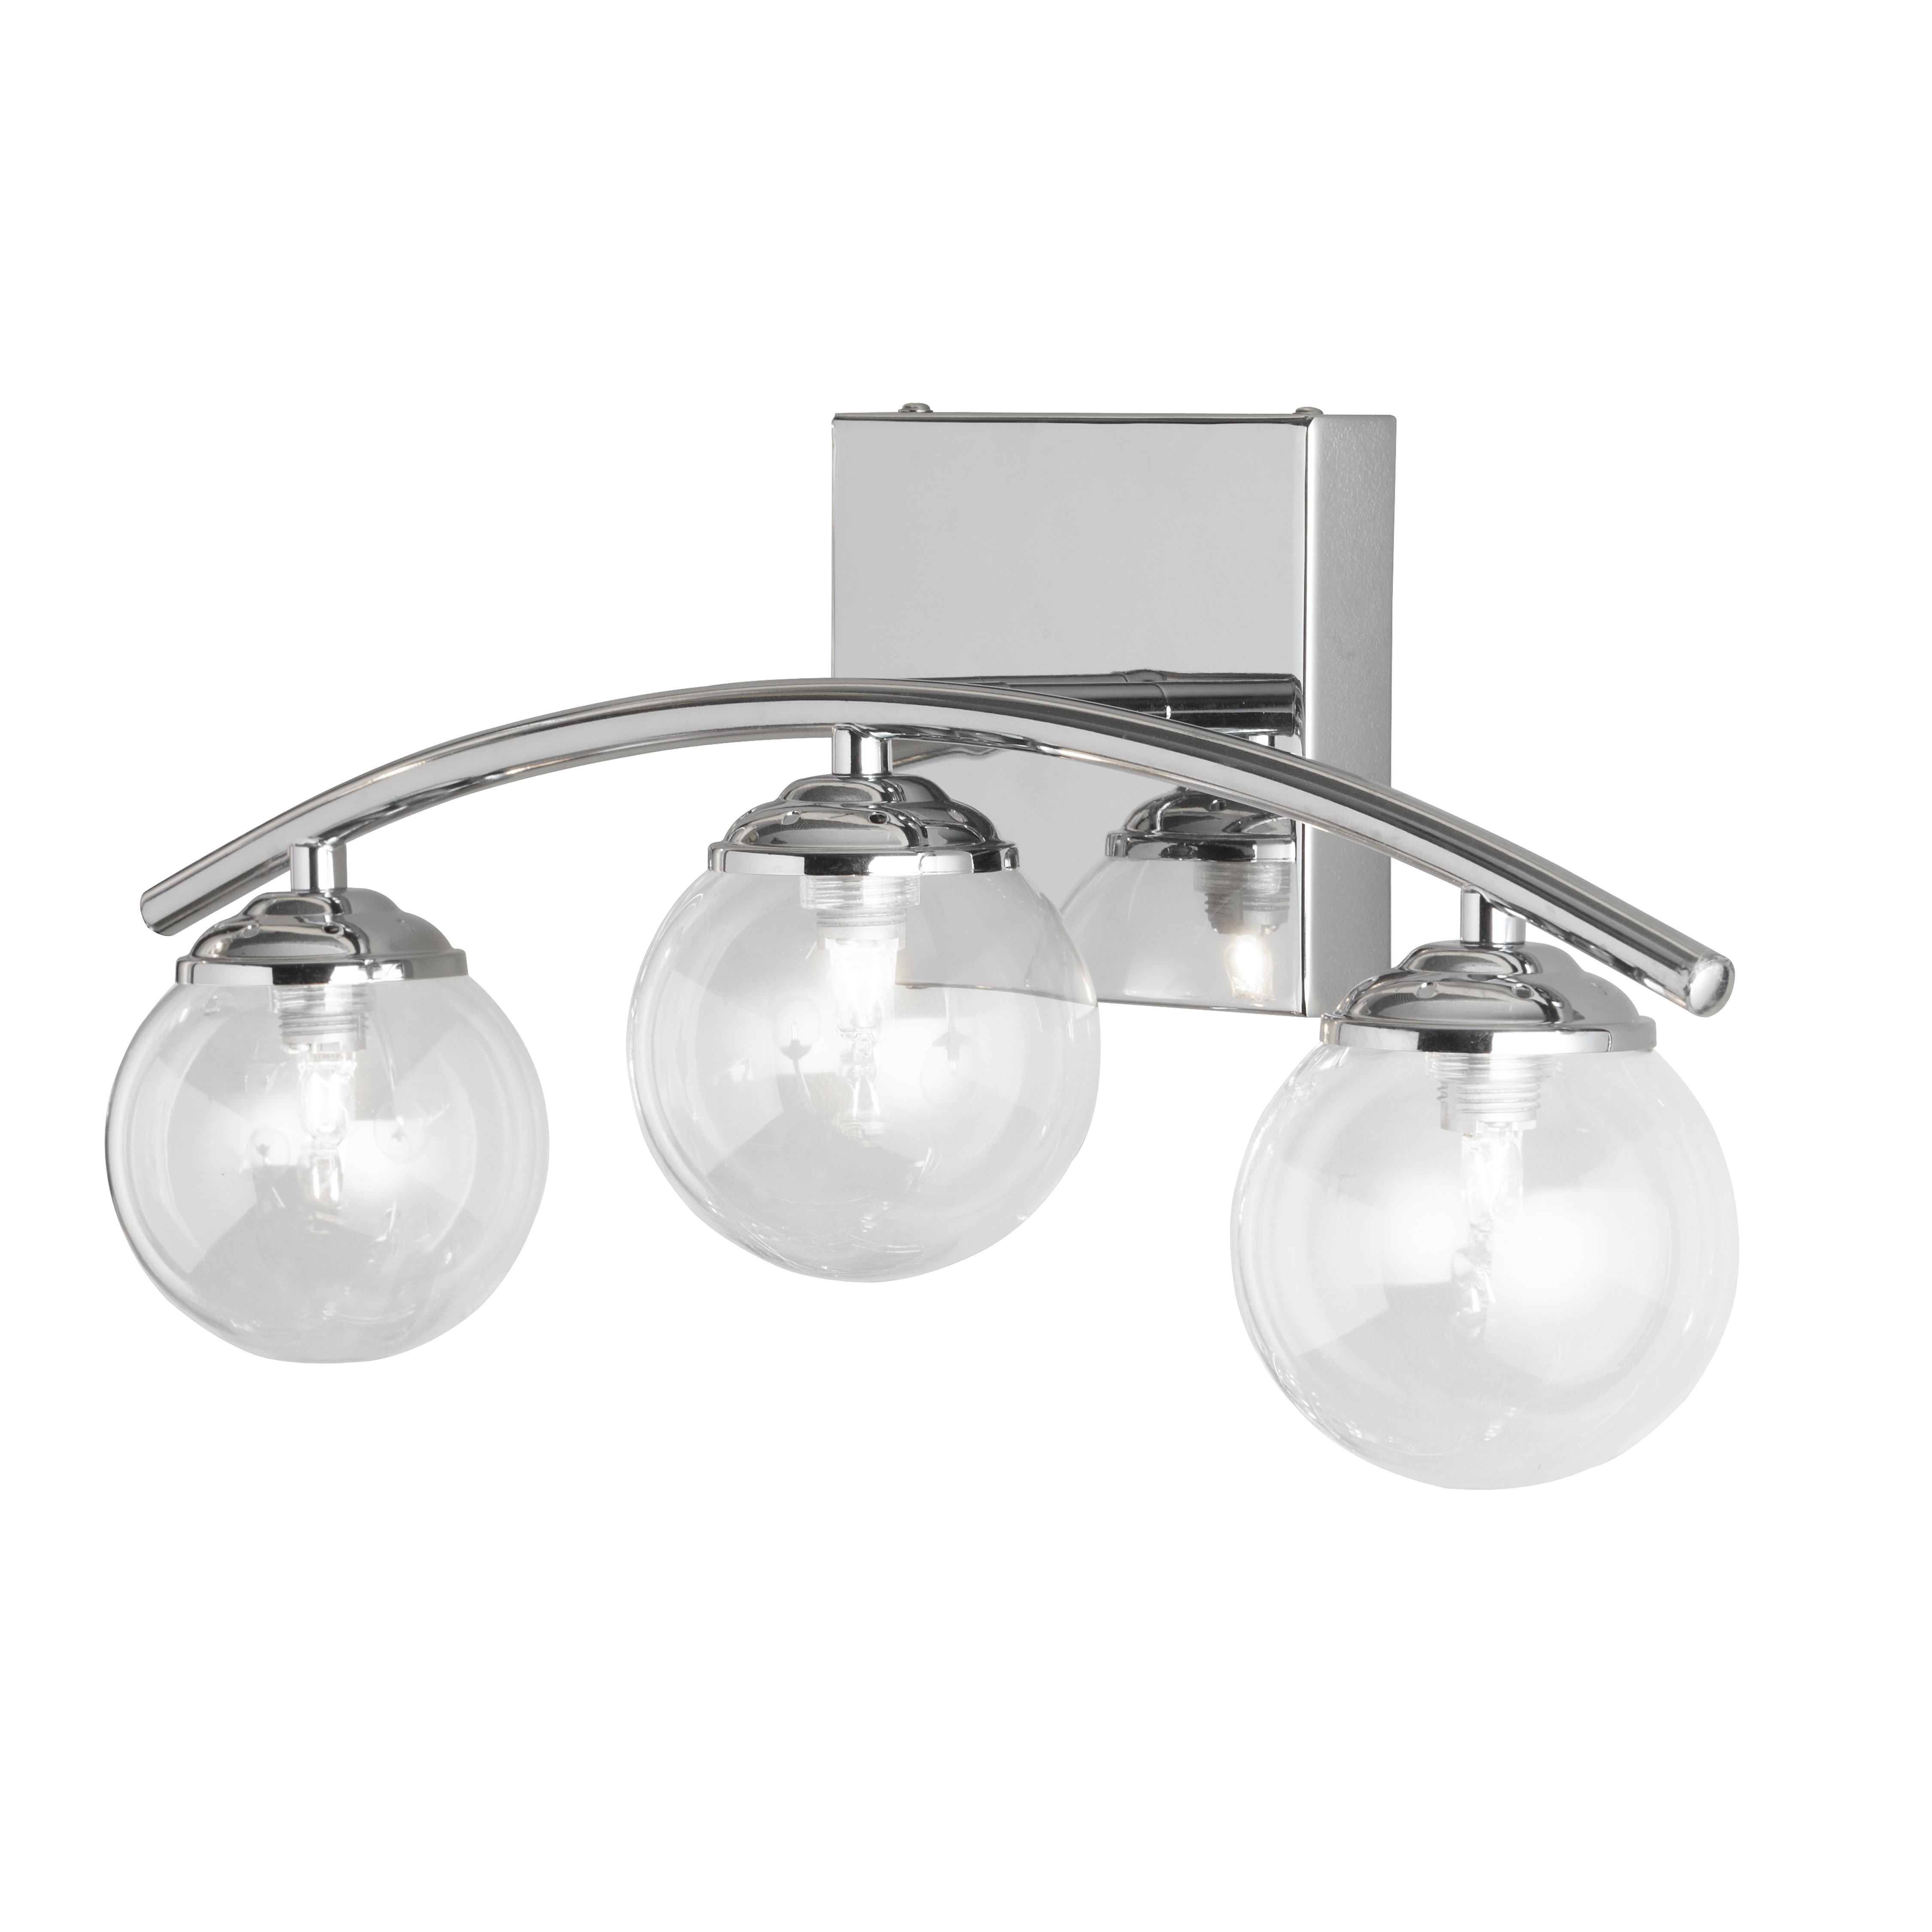 3 Light Vanity, Polished Chrome Finish with Clear Glass